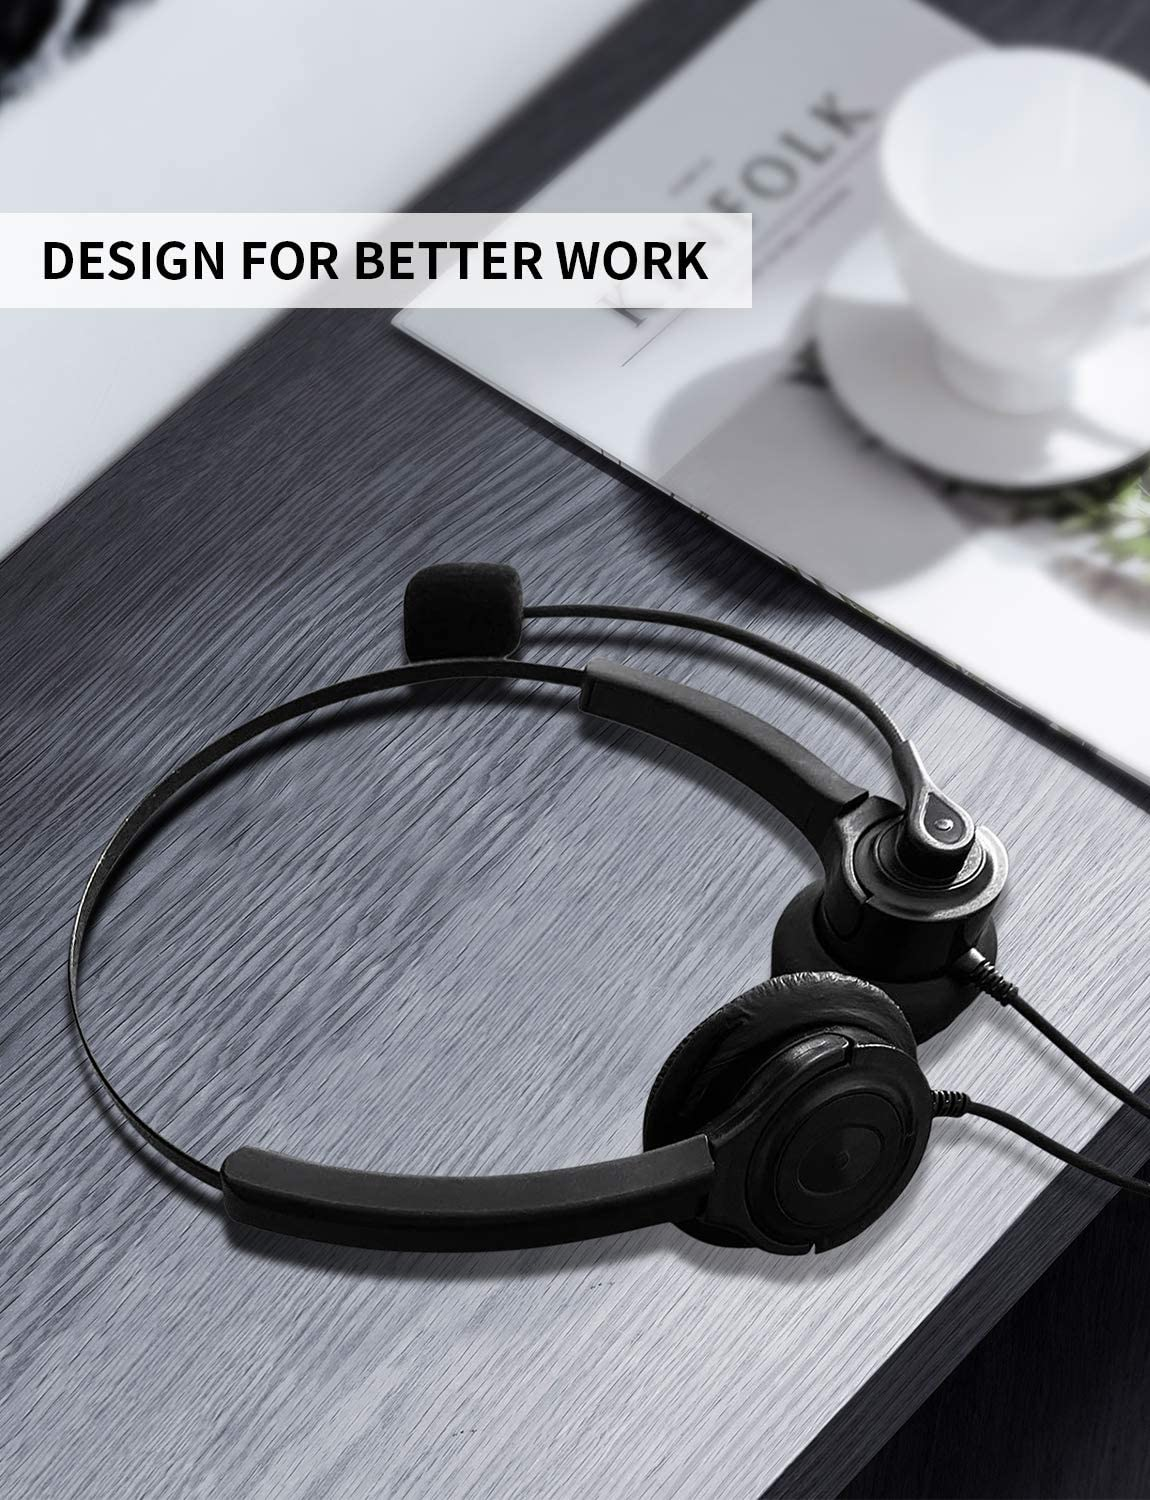 2020 Upgraded USB Wired Computer Headsets Headphones with Microphone Super Lightweight Hedphones for Skype//Crystal Clear Chat USB Headset with Microphone Noise Cancelling Mic and in-line Controls